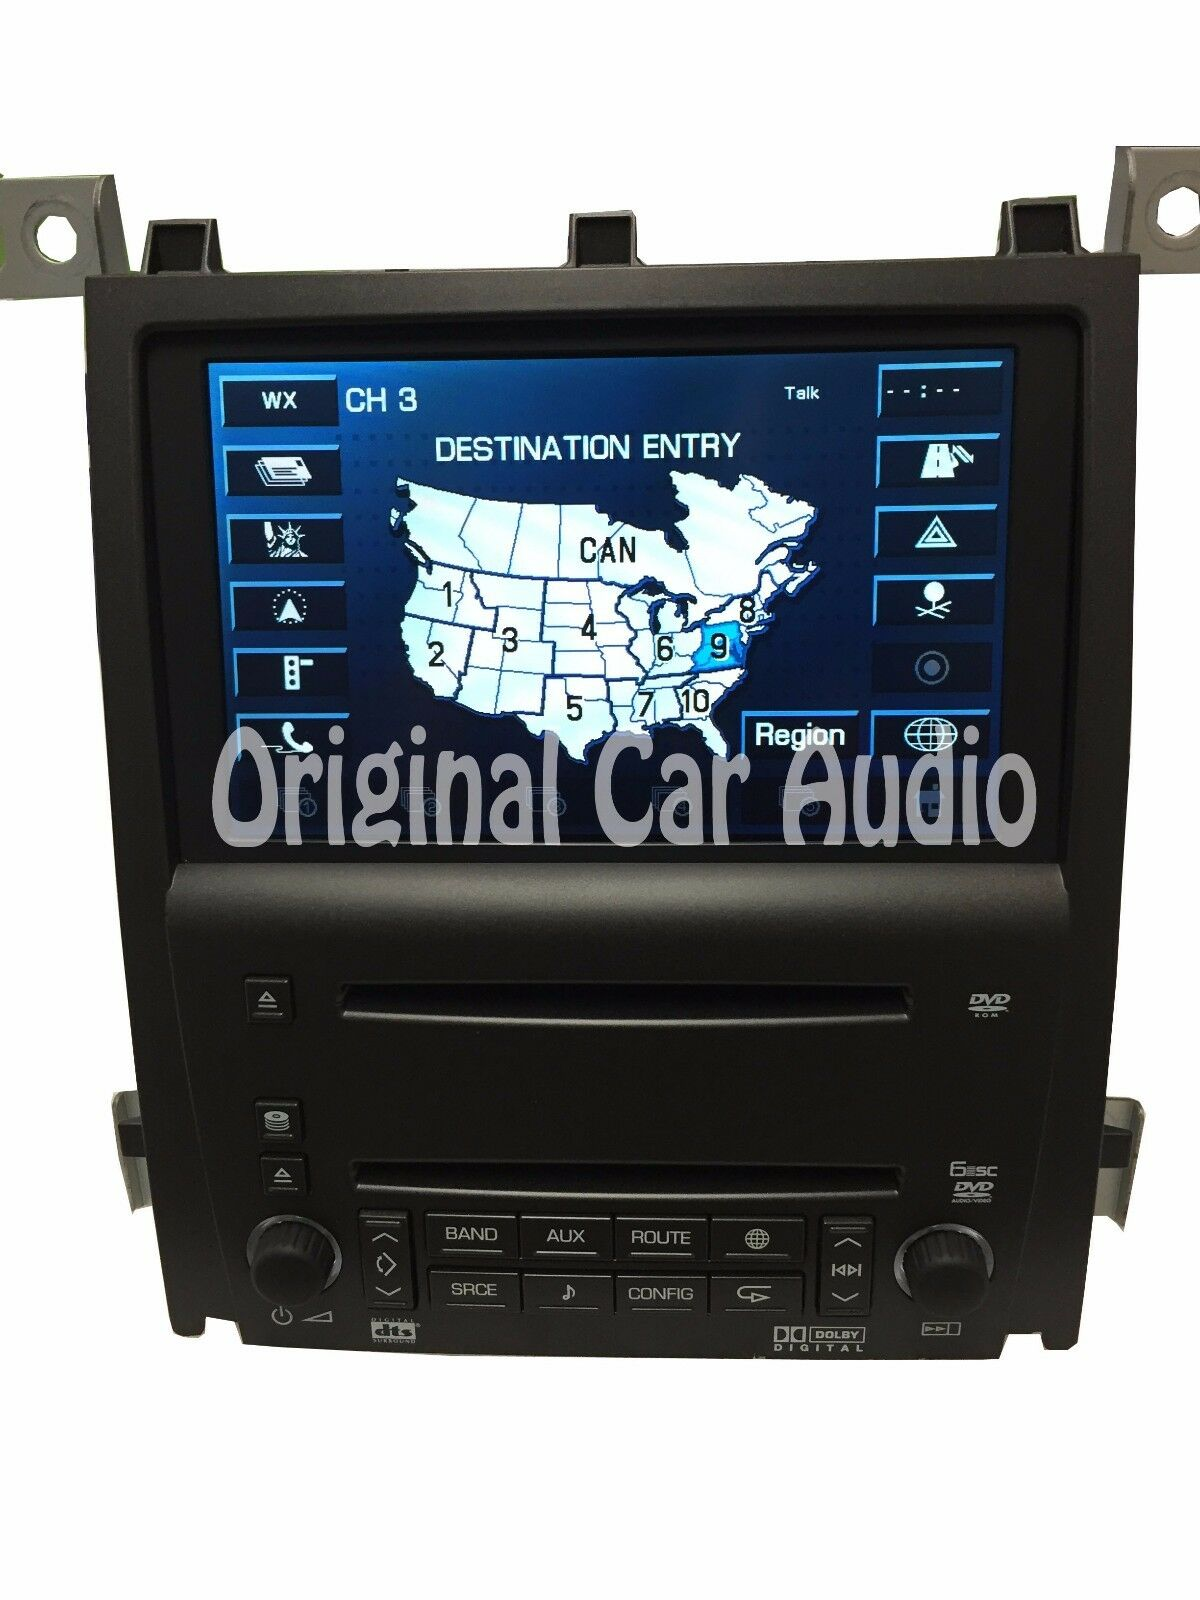 Cadillac STS Navigation GPS LCD Screen 6 Disc CD Changer DVD Player  10377613 1 of 10Only 2 available ...